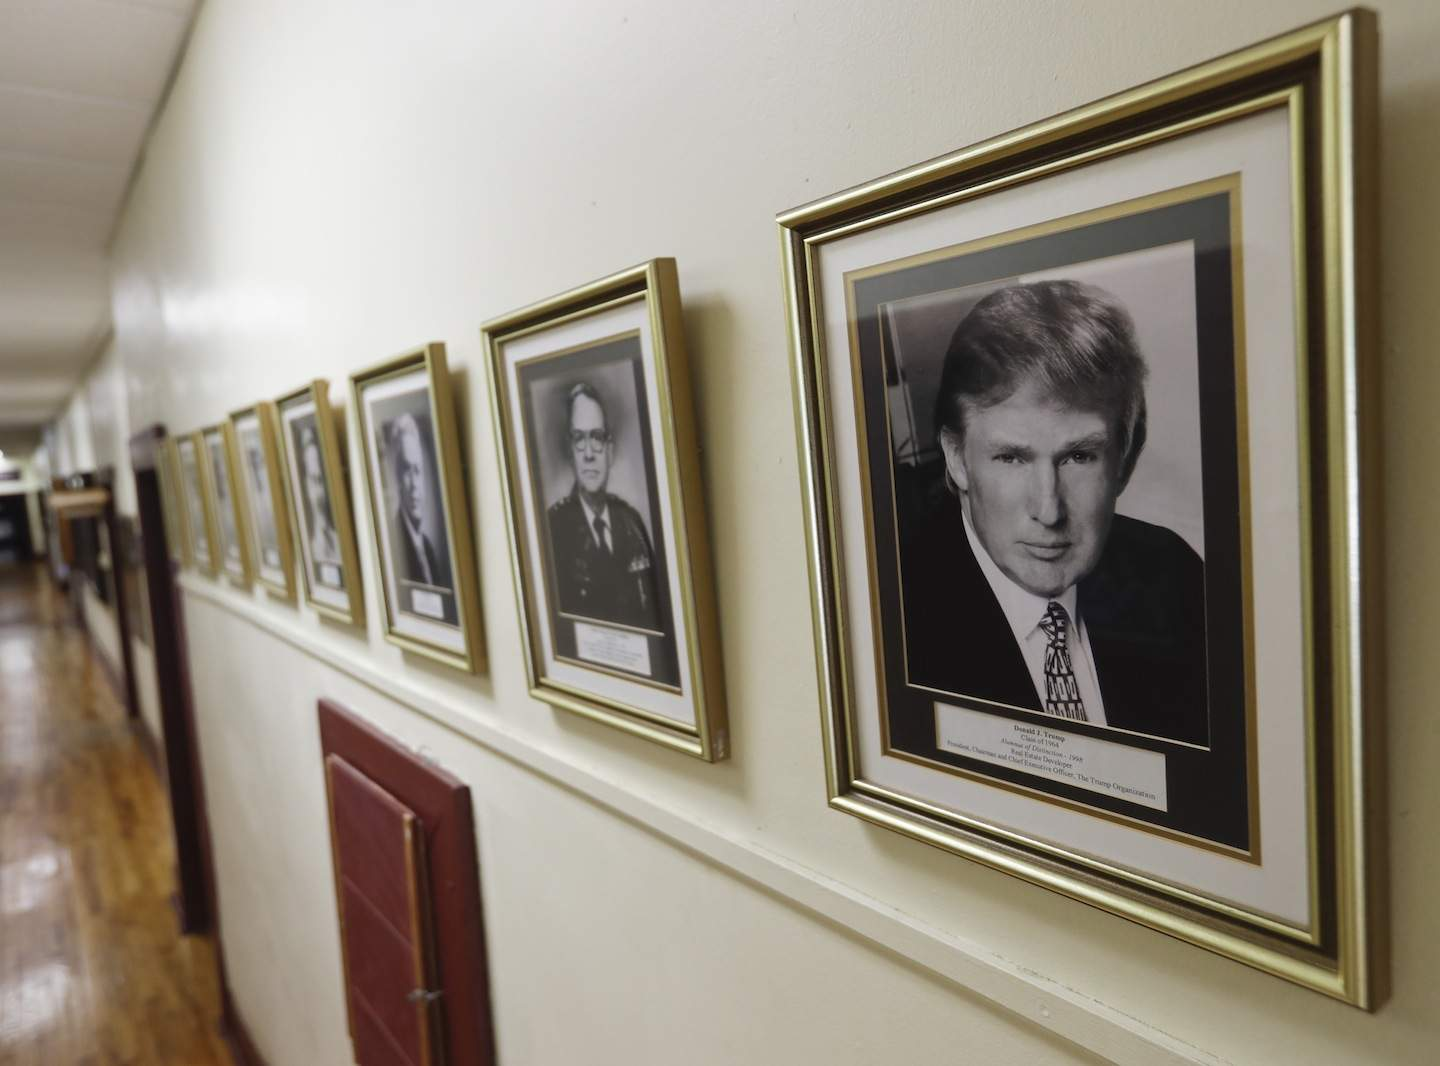 In this Thursday, Sept. 8, 2016 photo, a portrait of Donald Trump hangs on the wall at the New York Military Academy, in Cornwall-on-Hudson, N.Y. Trump talks tough about dealing with China, but his alma mater is looking to Asia to survive. The school has reopened after a rough patch with new Chinese owners and a new superintendent who emigrated from China before making her mark in the New York City school system. (AP Photo/Mike Groll)